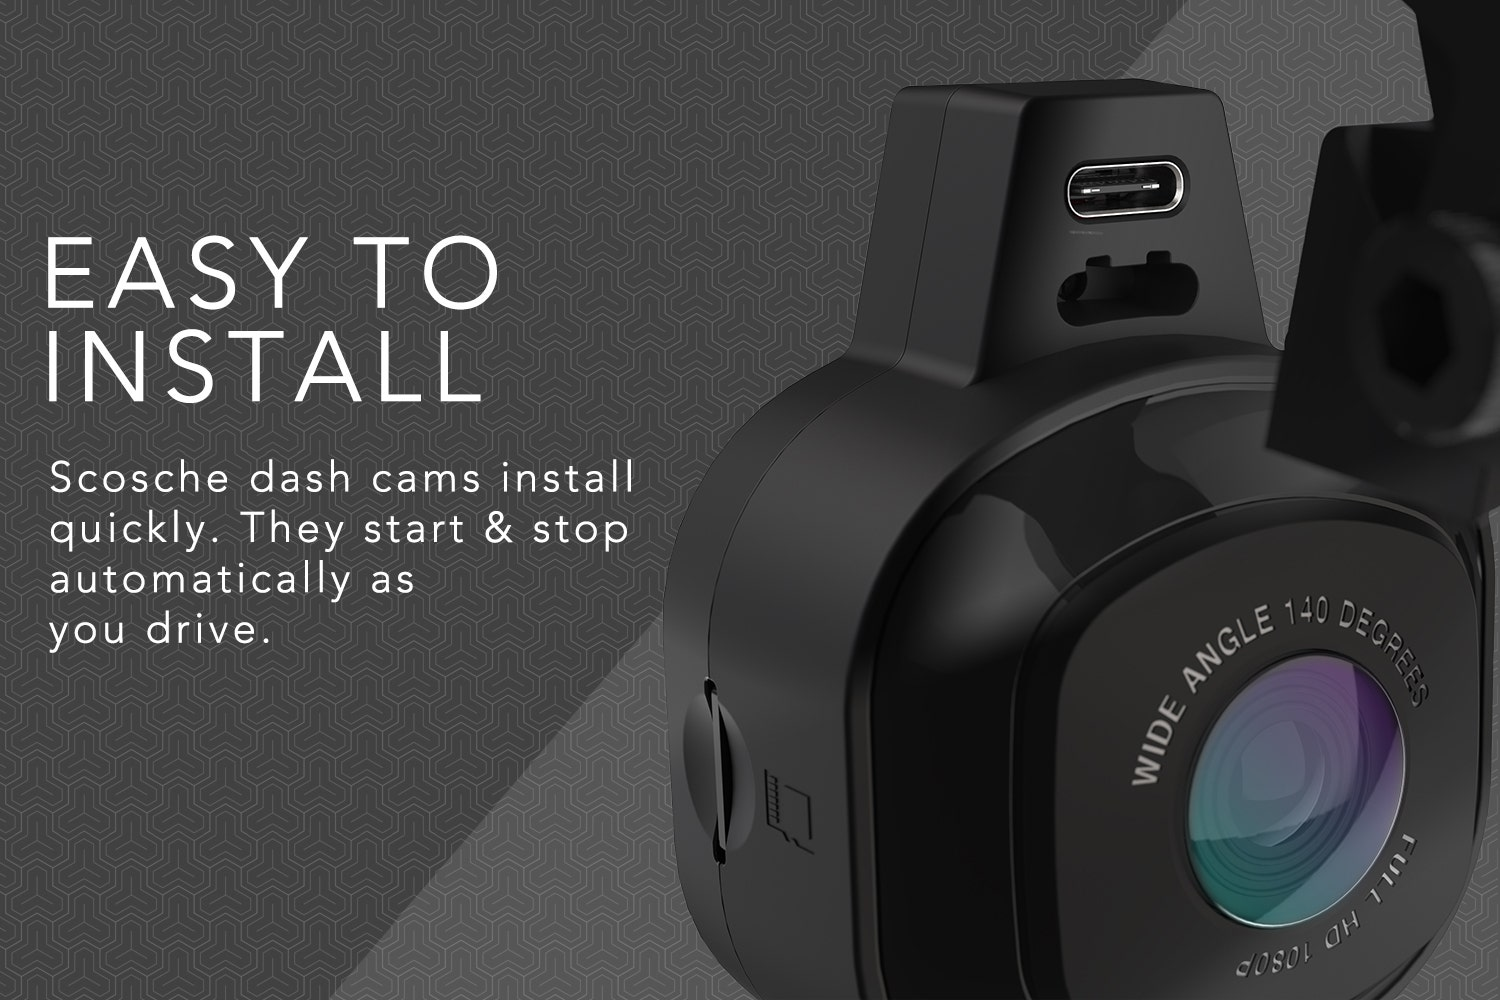 Easy To Install, Scosche dash cams install quickly. They start & stop automatically as you drive.